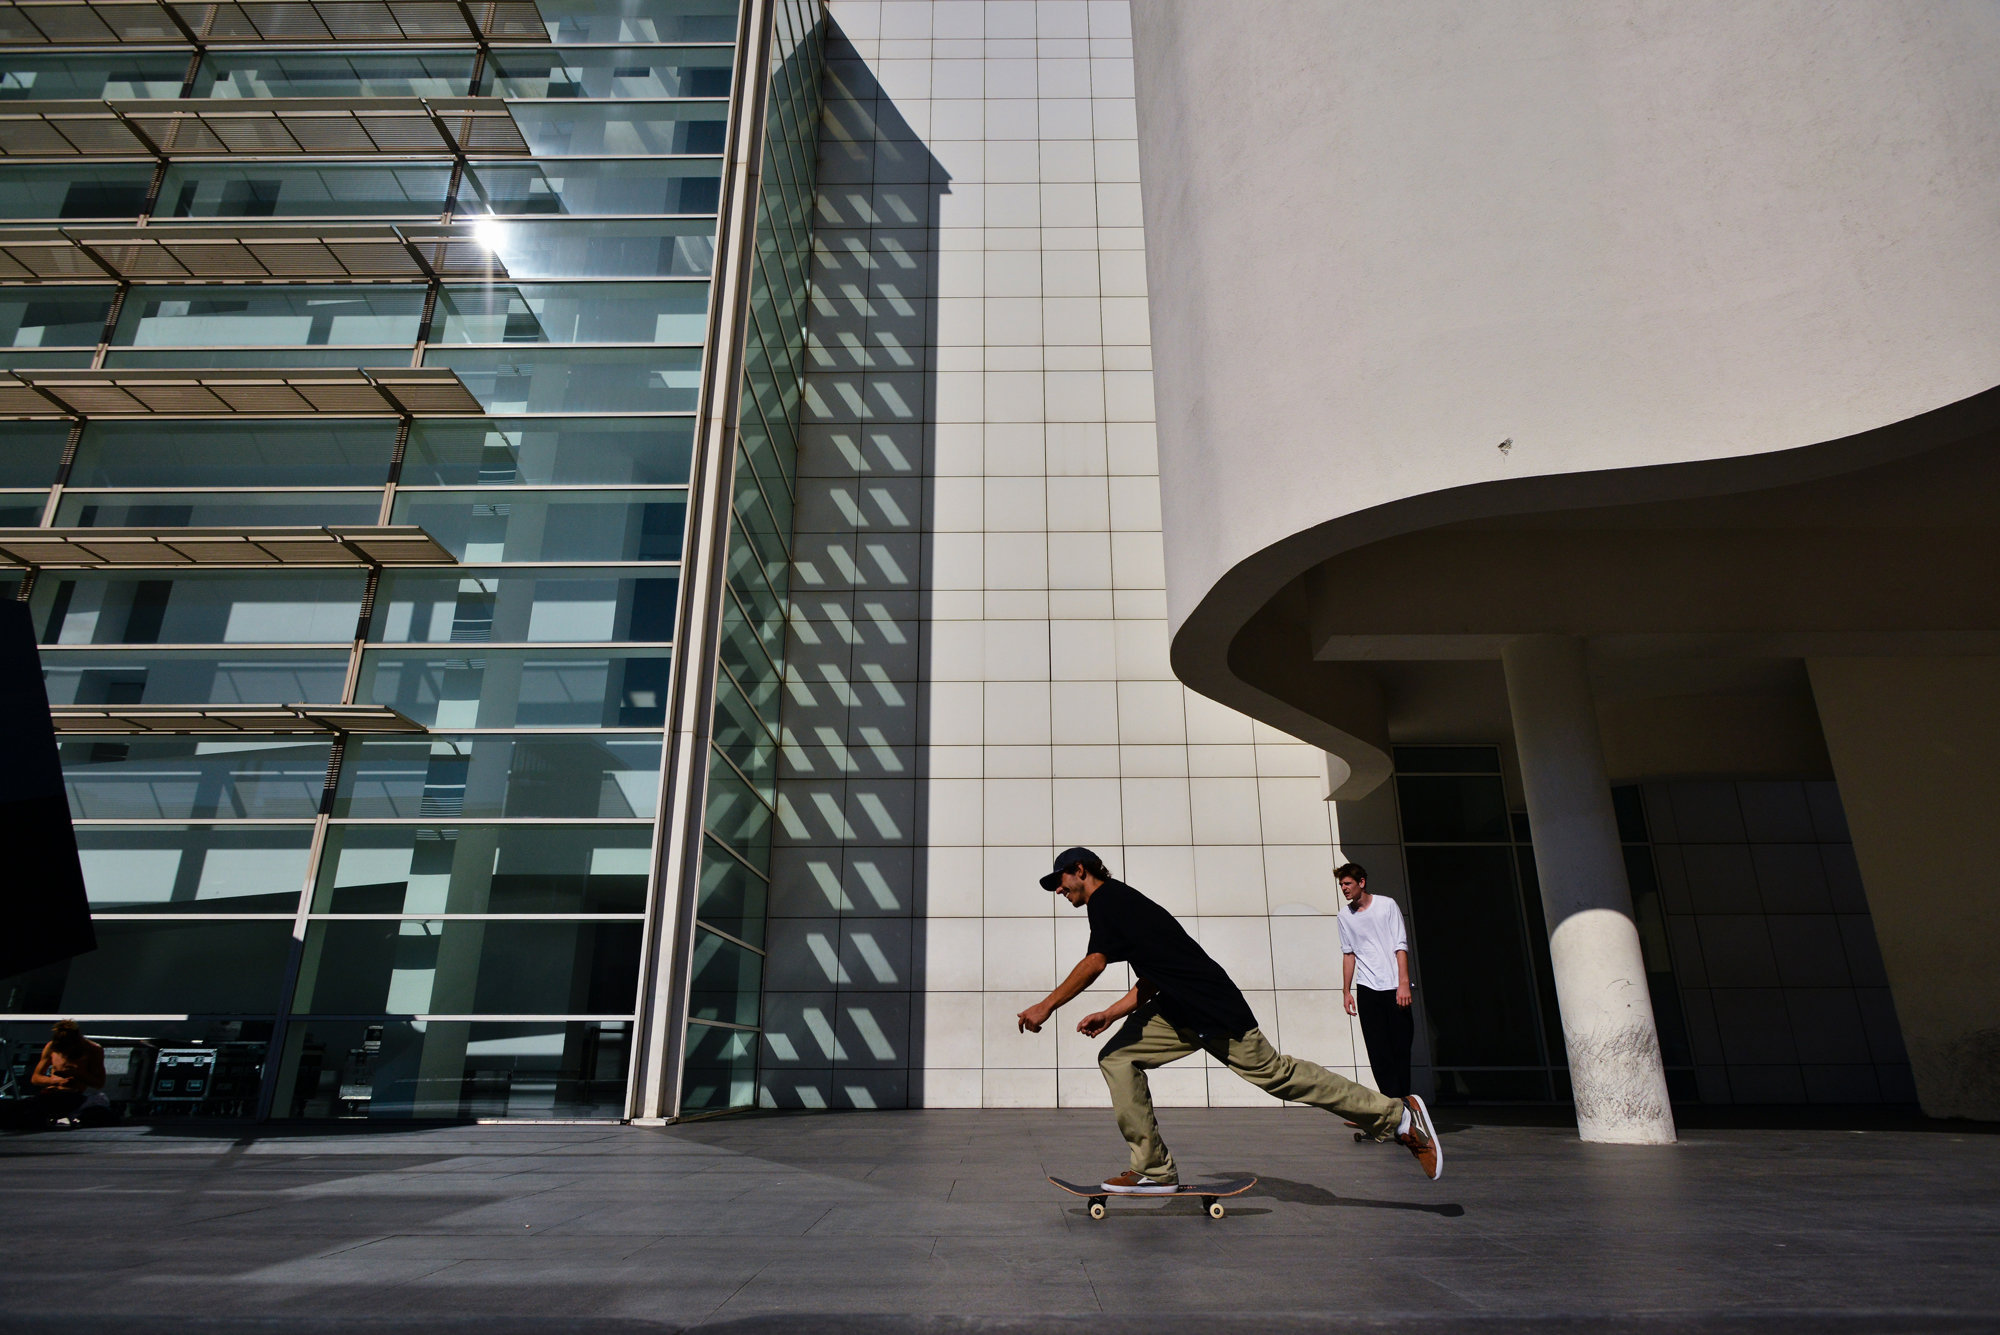 Skate or die at MACBA